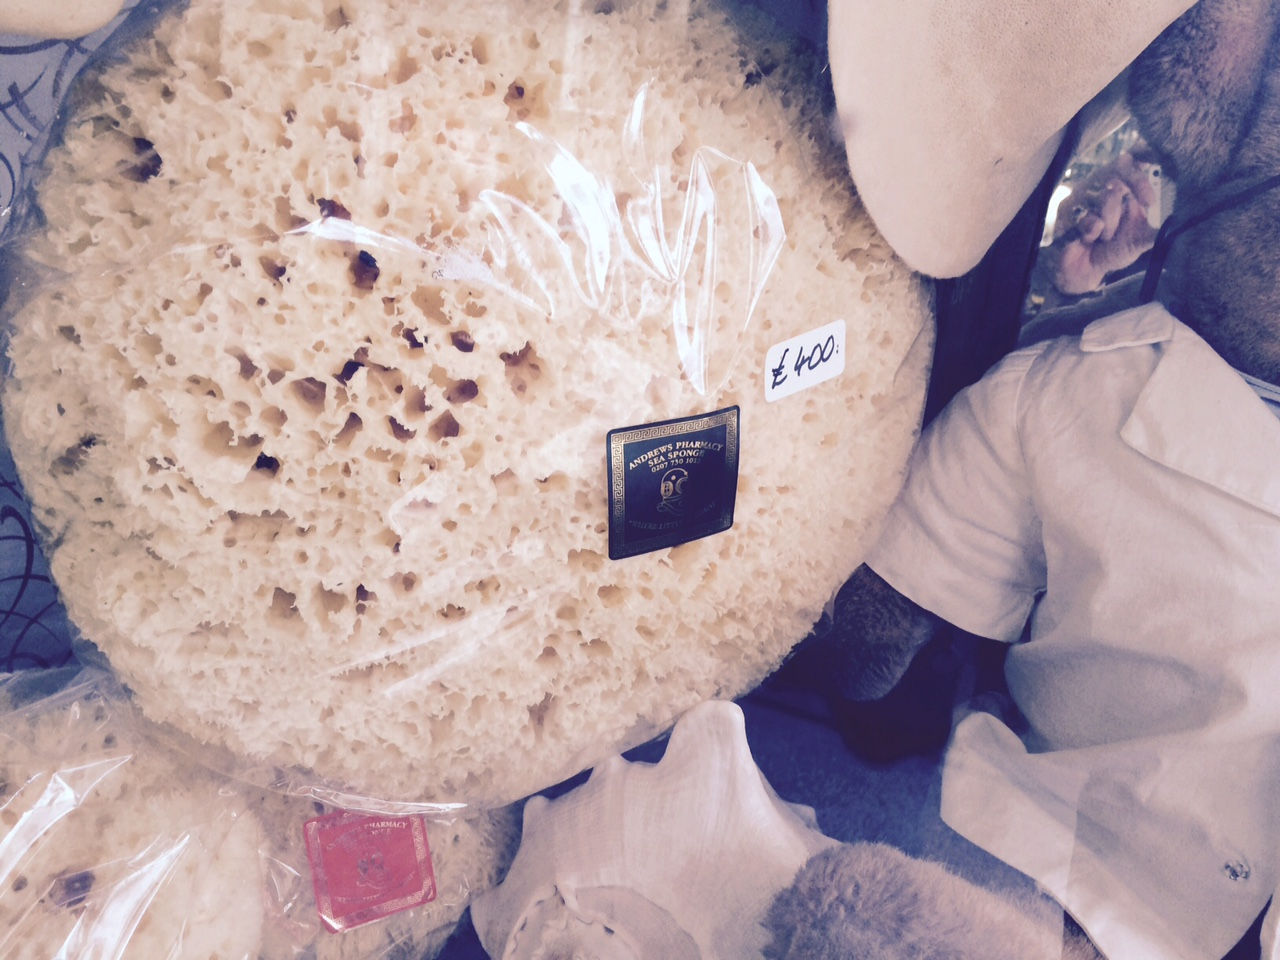 Sponge in posh Chelsea shop.  Price: 400 pounds, about $560.  A BLOODY SPONGE (albeit rather large).